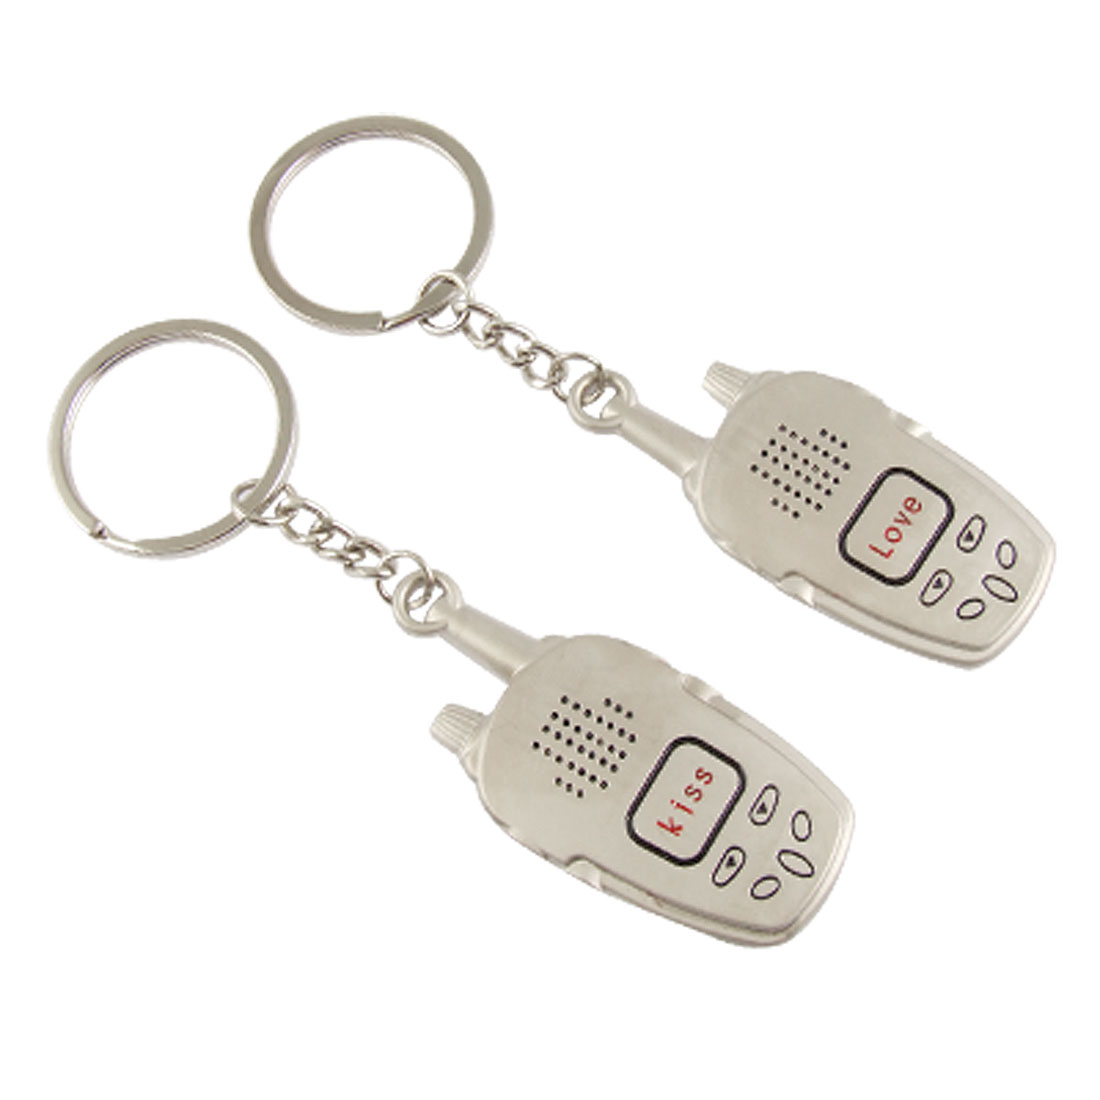 Mobile Phone Shape Pandent Silver Tone Keychains 2 Pcs